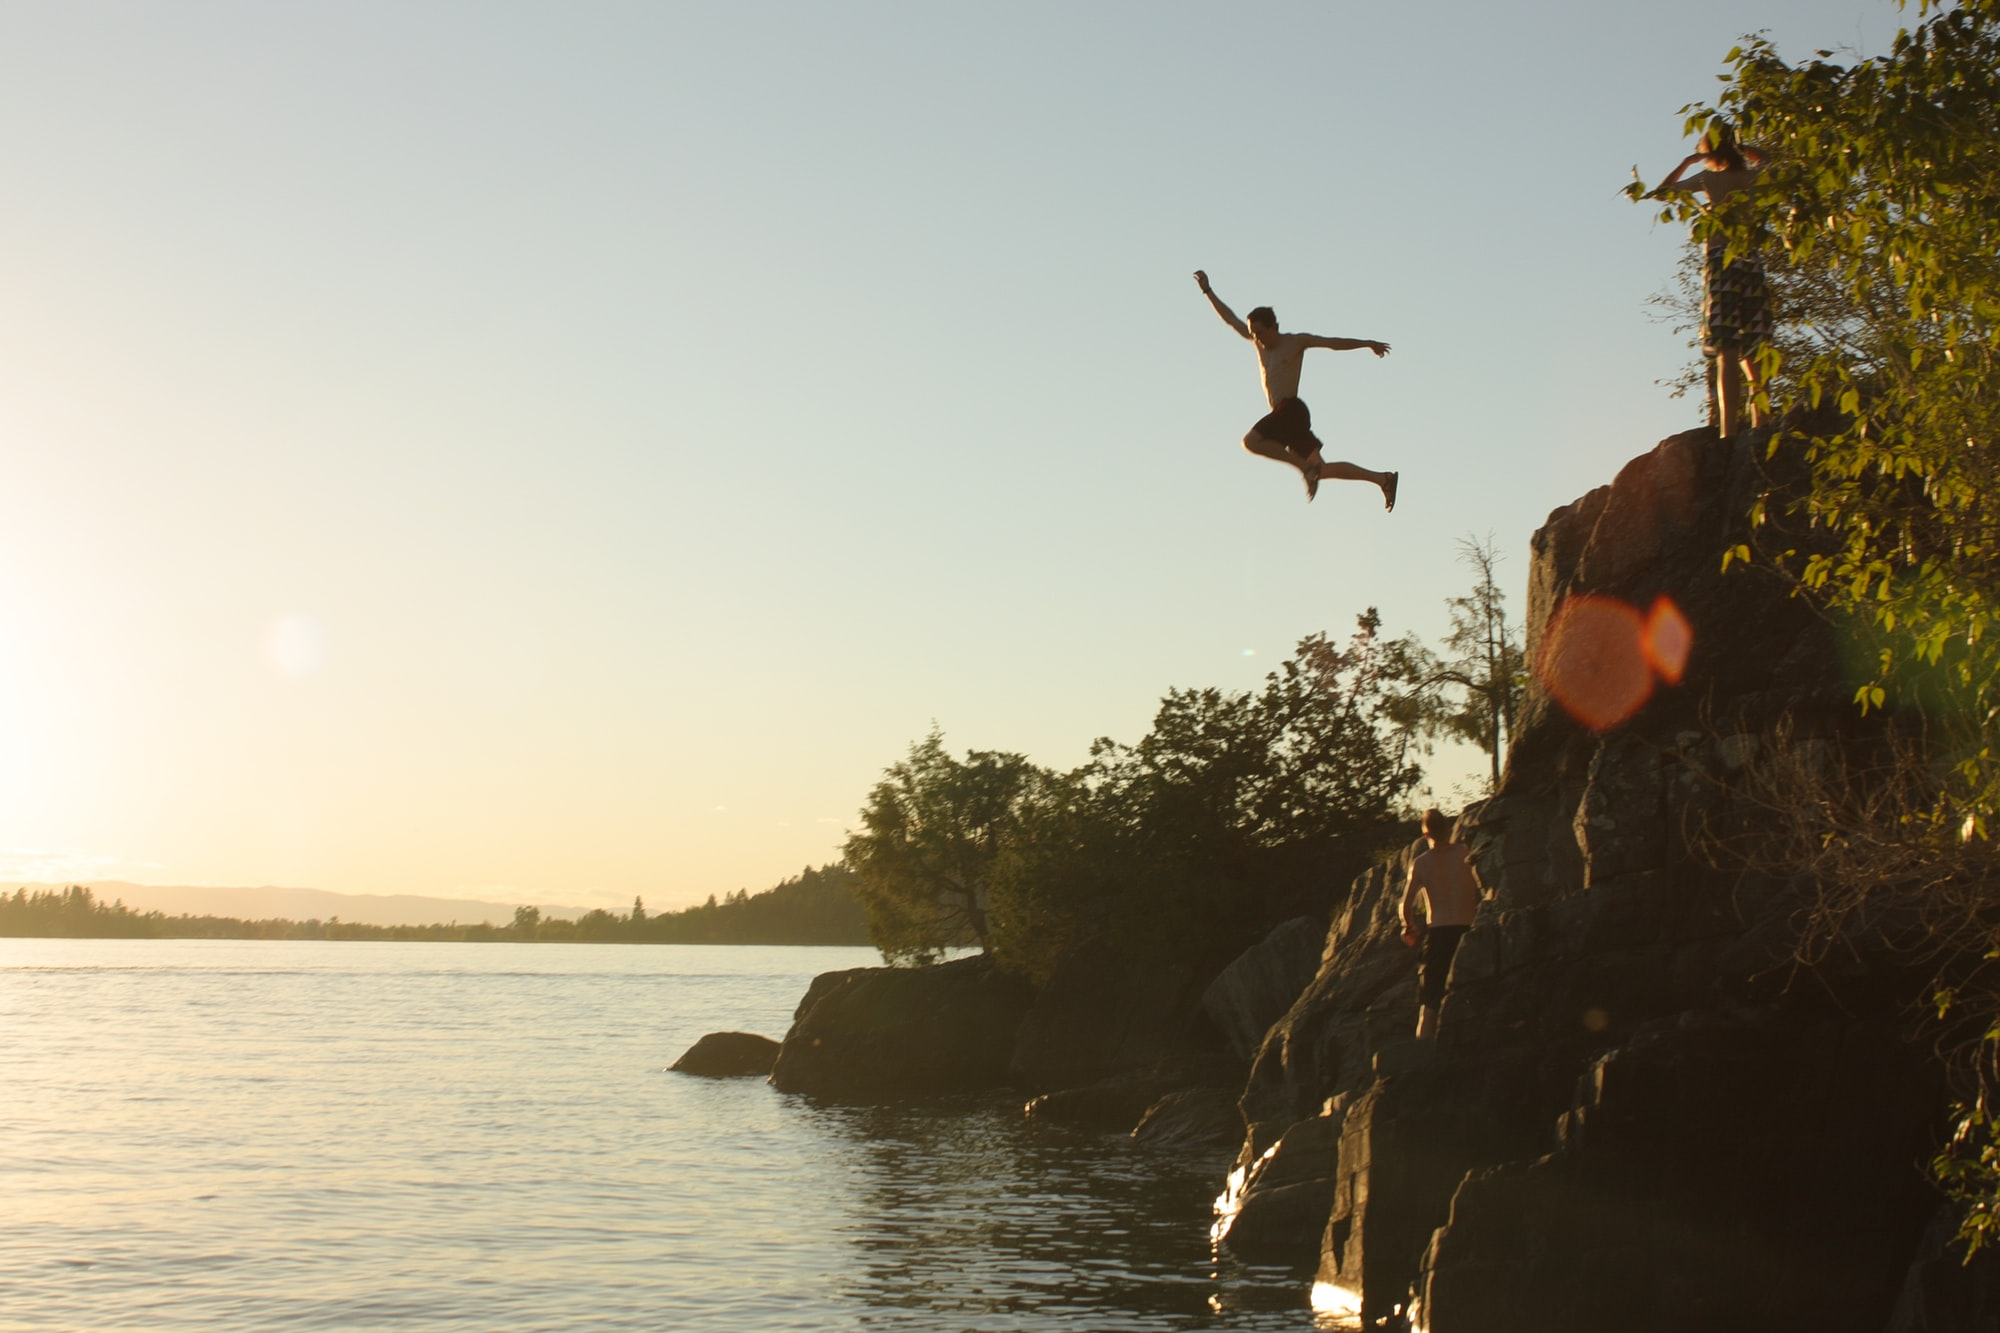 Cliff jumping with some friends